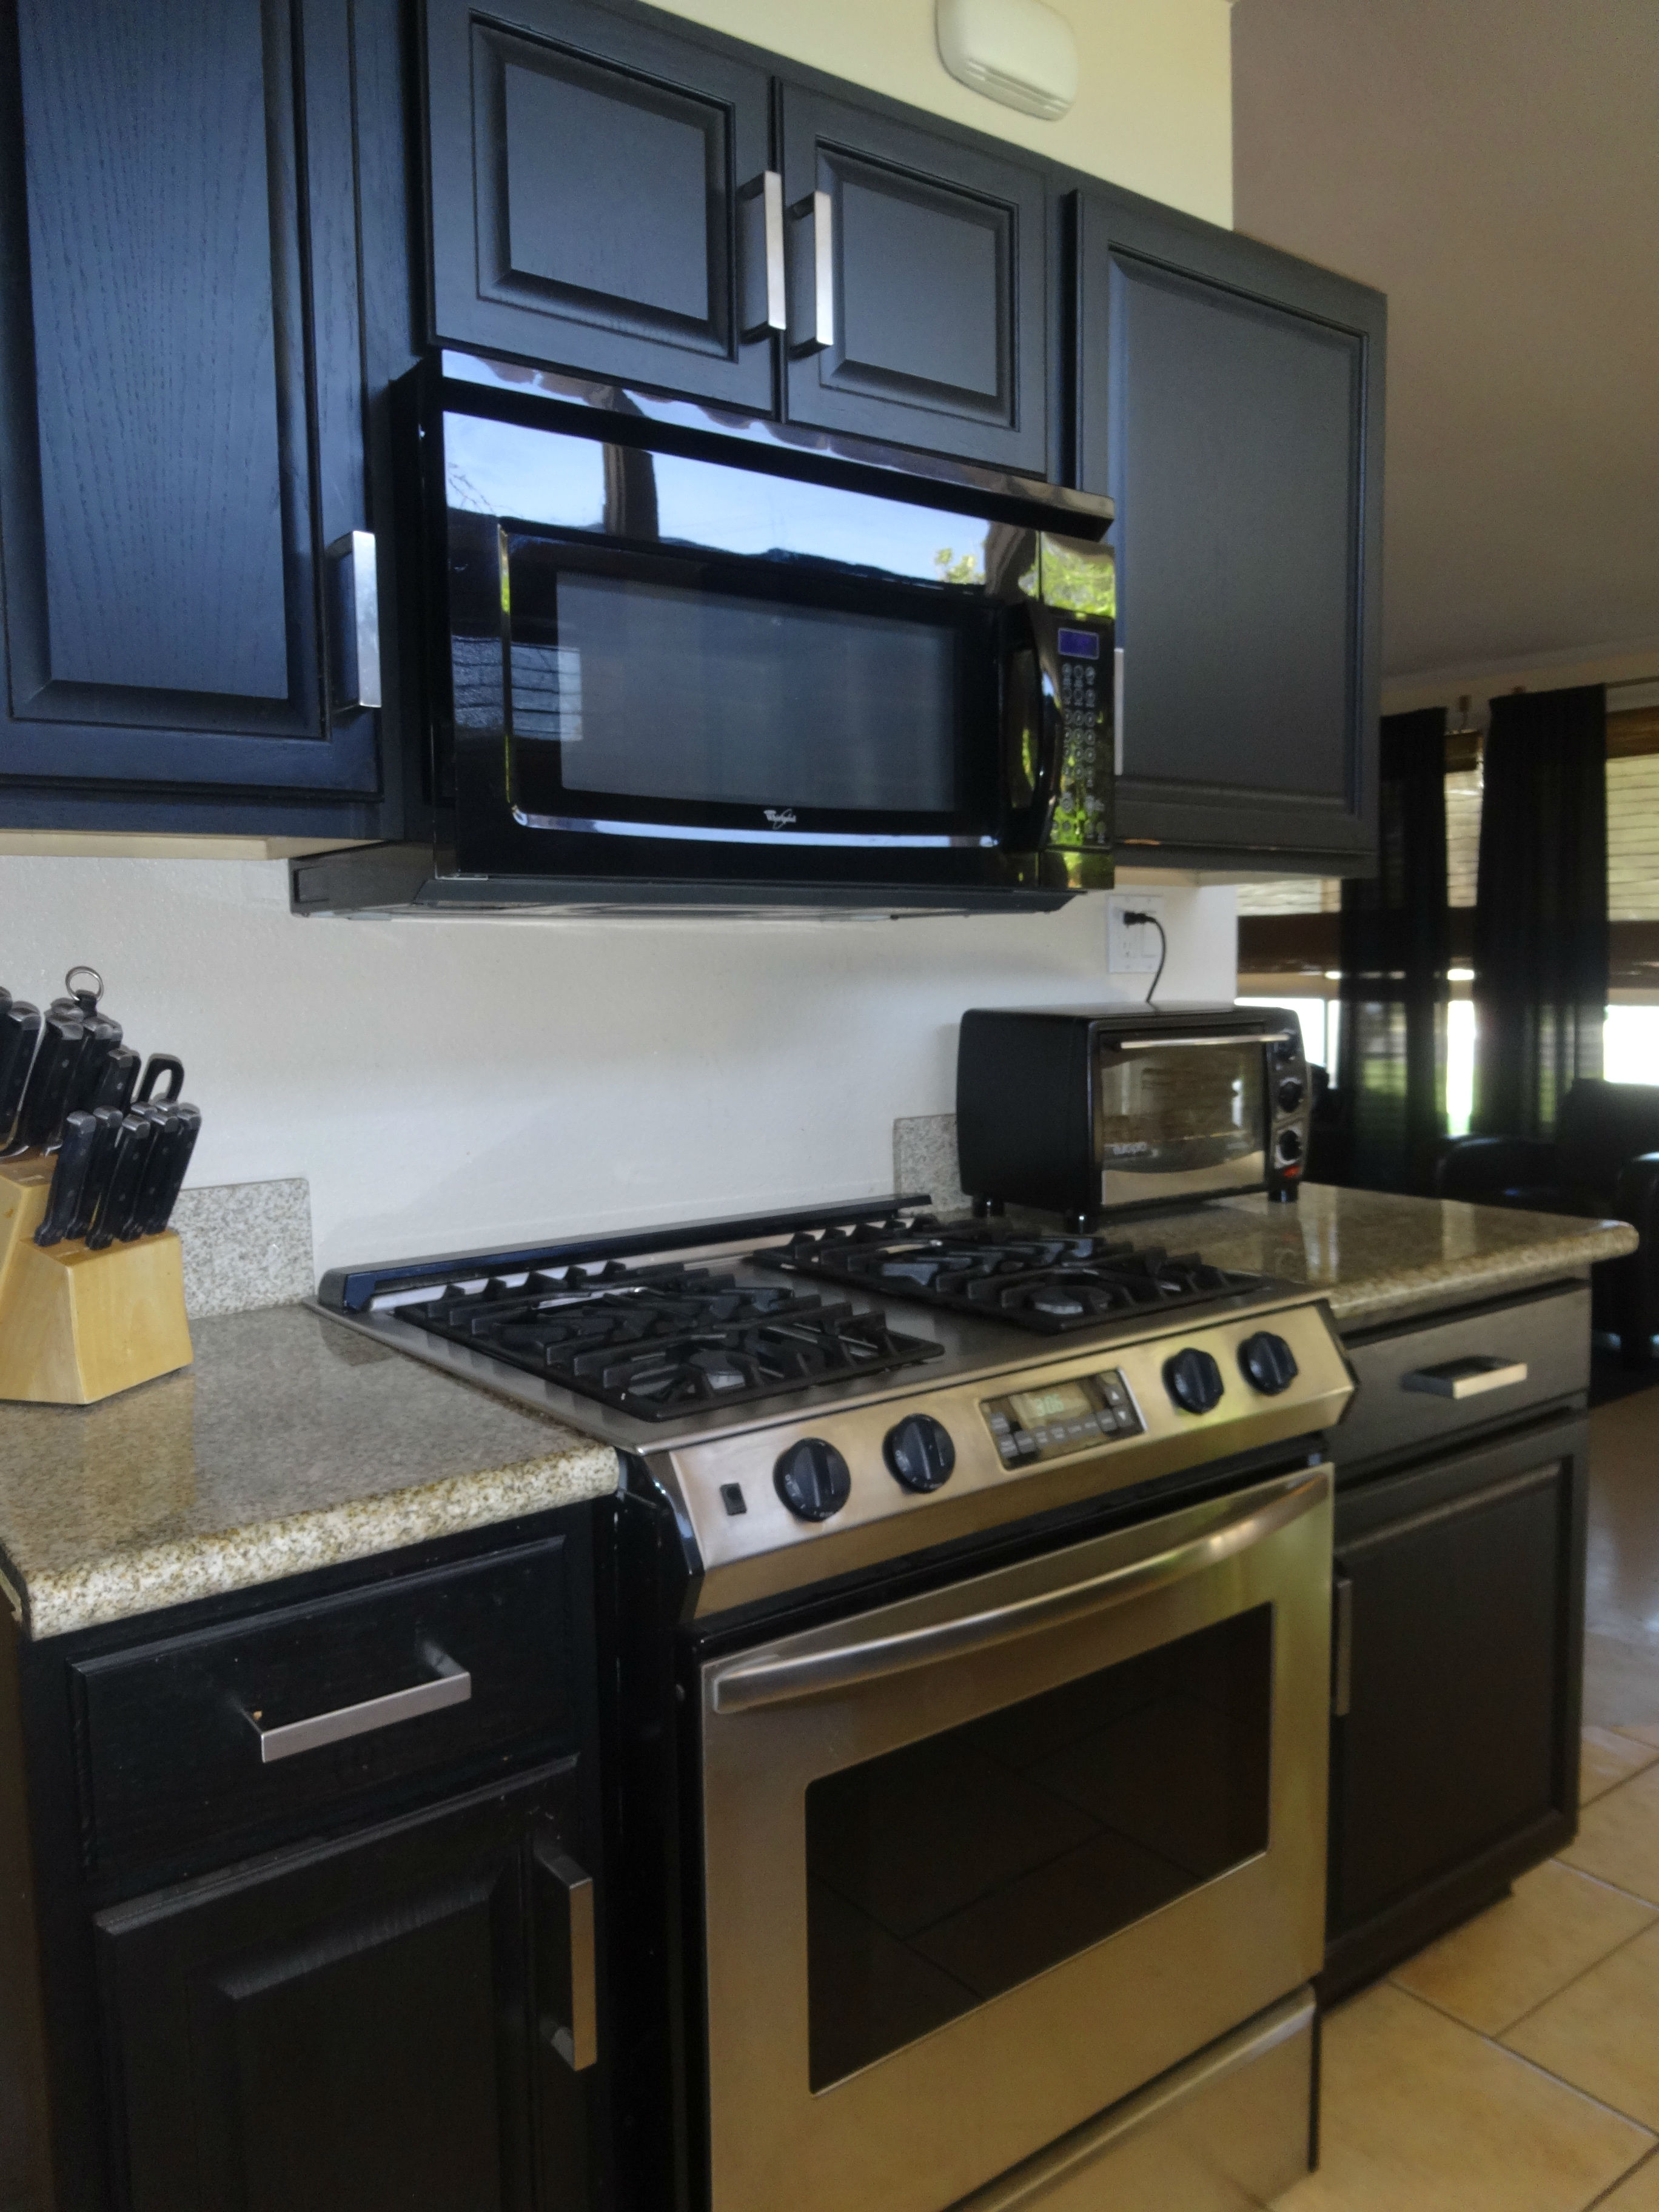 Gas stainless steel stove and built-in microwave in lovely remodeled kitchen!